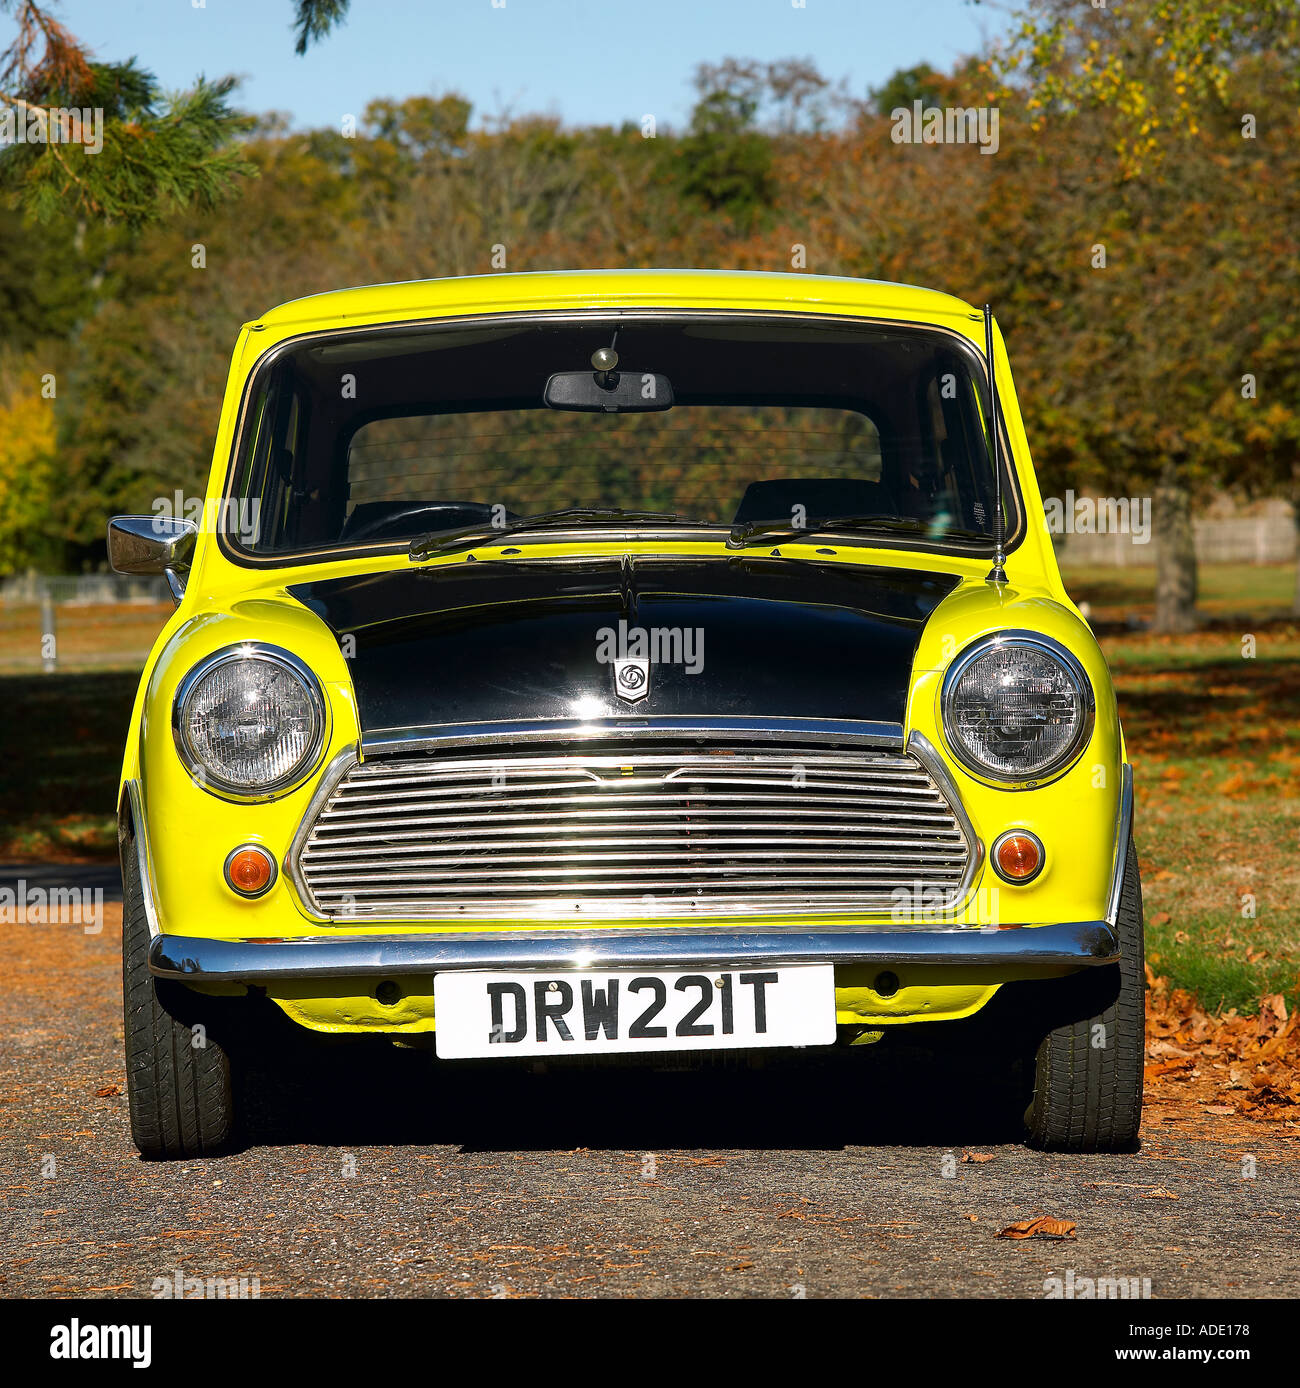 Mr Bean S Mini From The Tv Programme Of The Same Name Stock Photo Royalty Free Image 909688